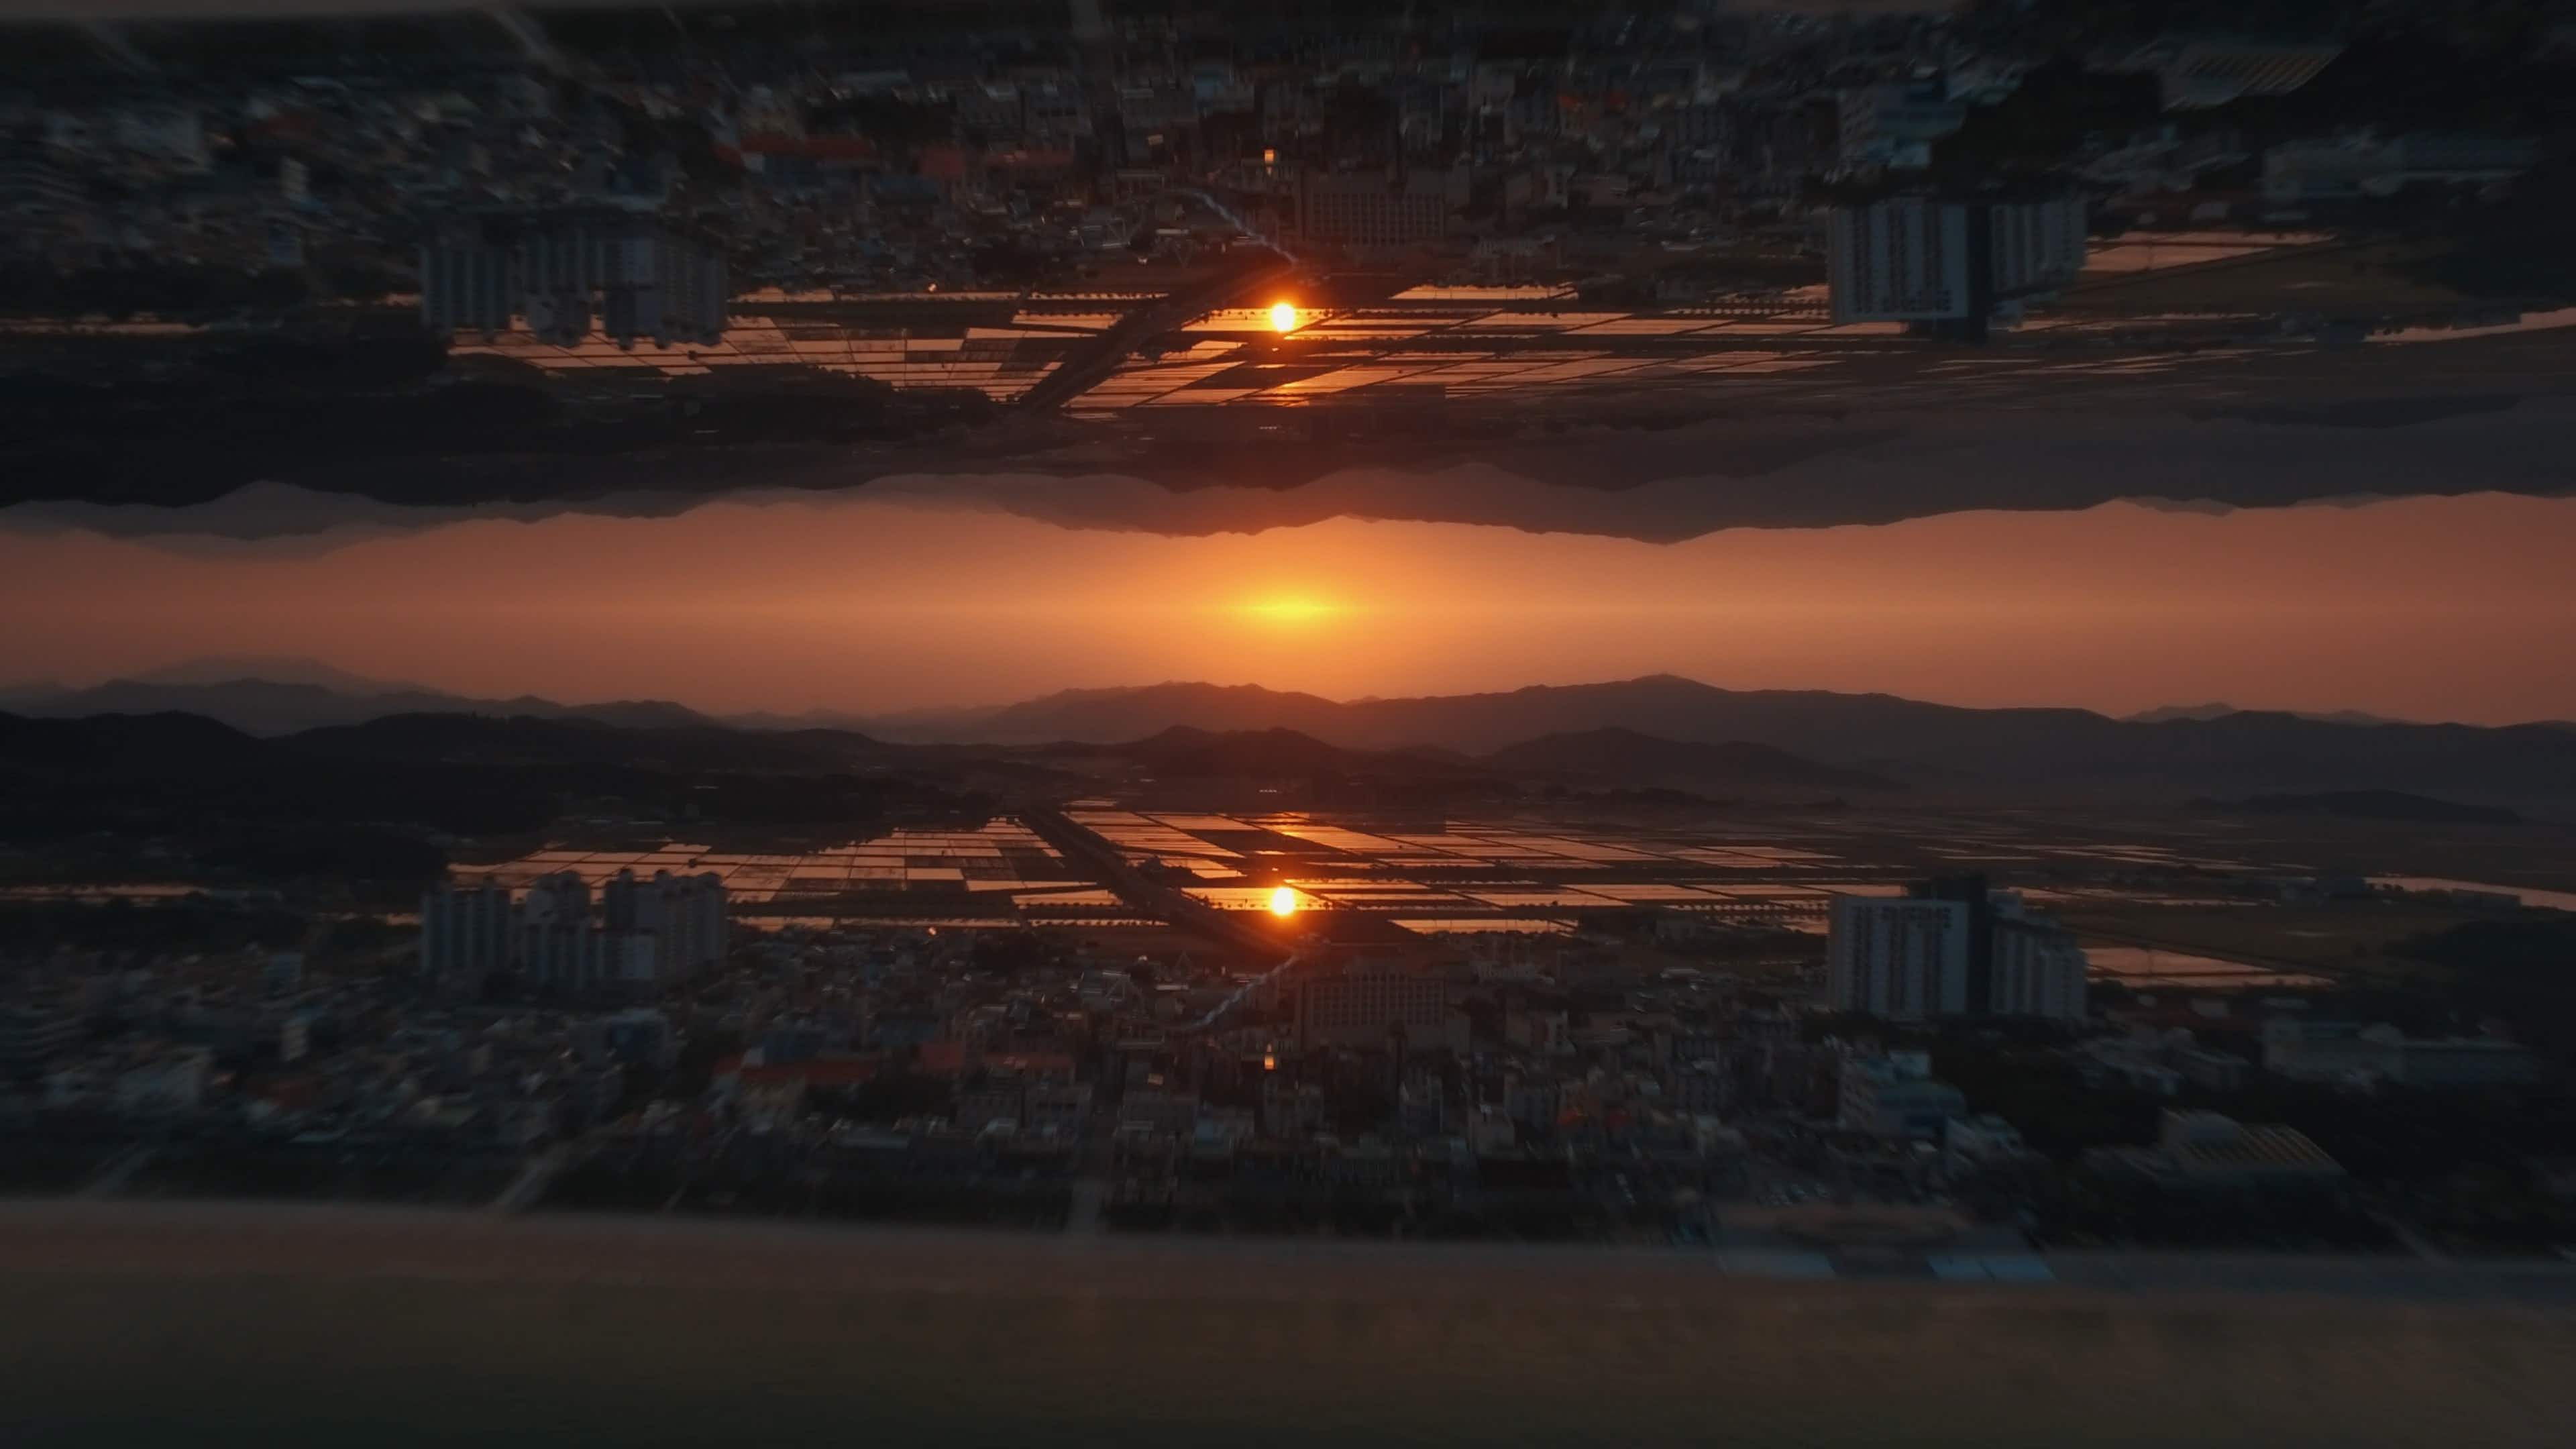 Watch this video reimagine South Korea as a dark, sci-fi world